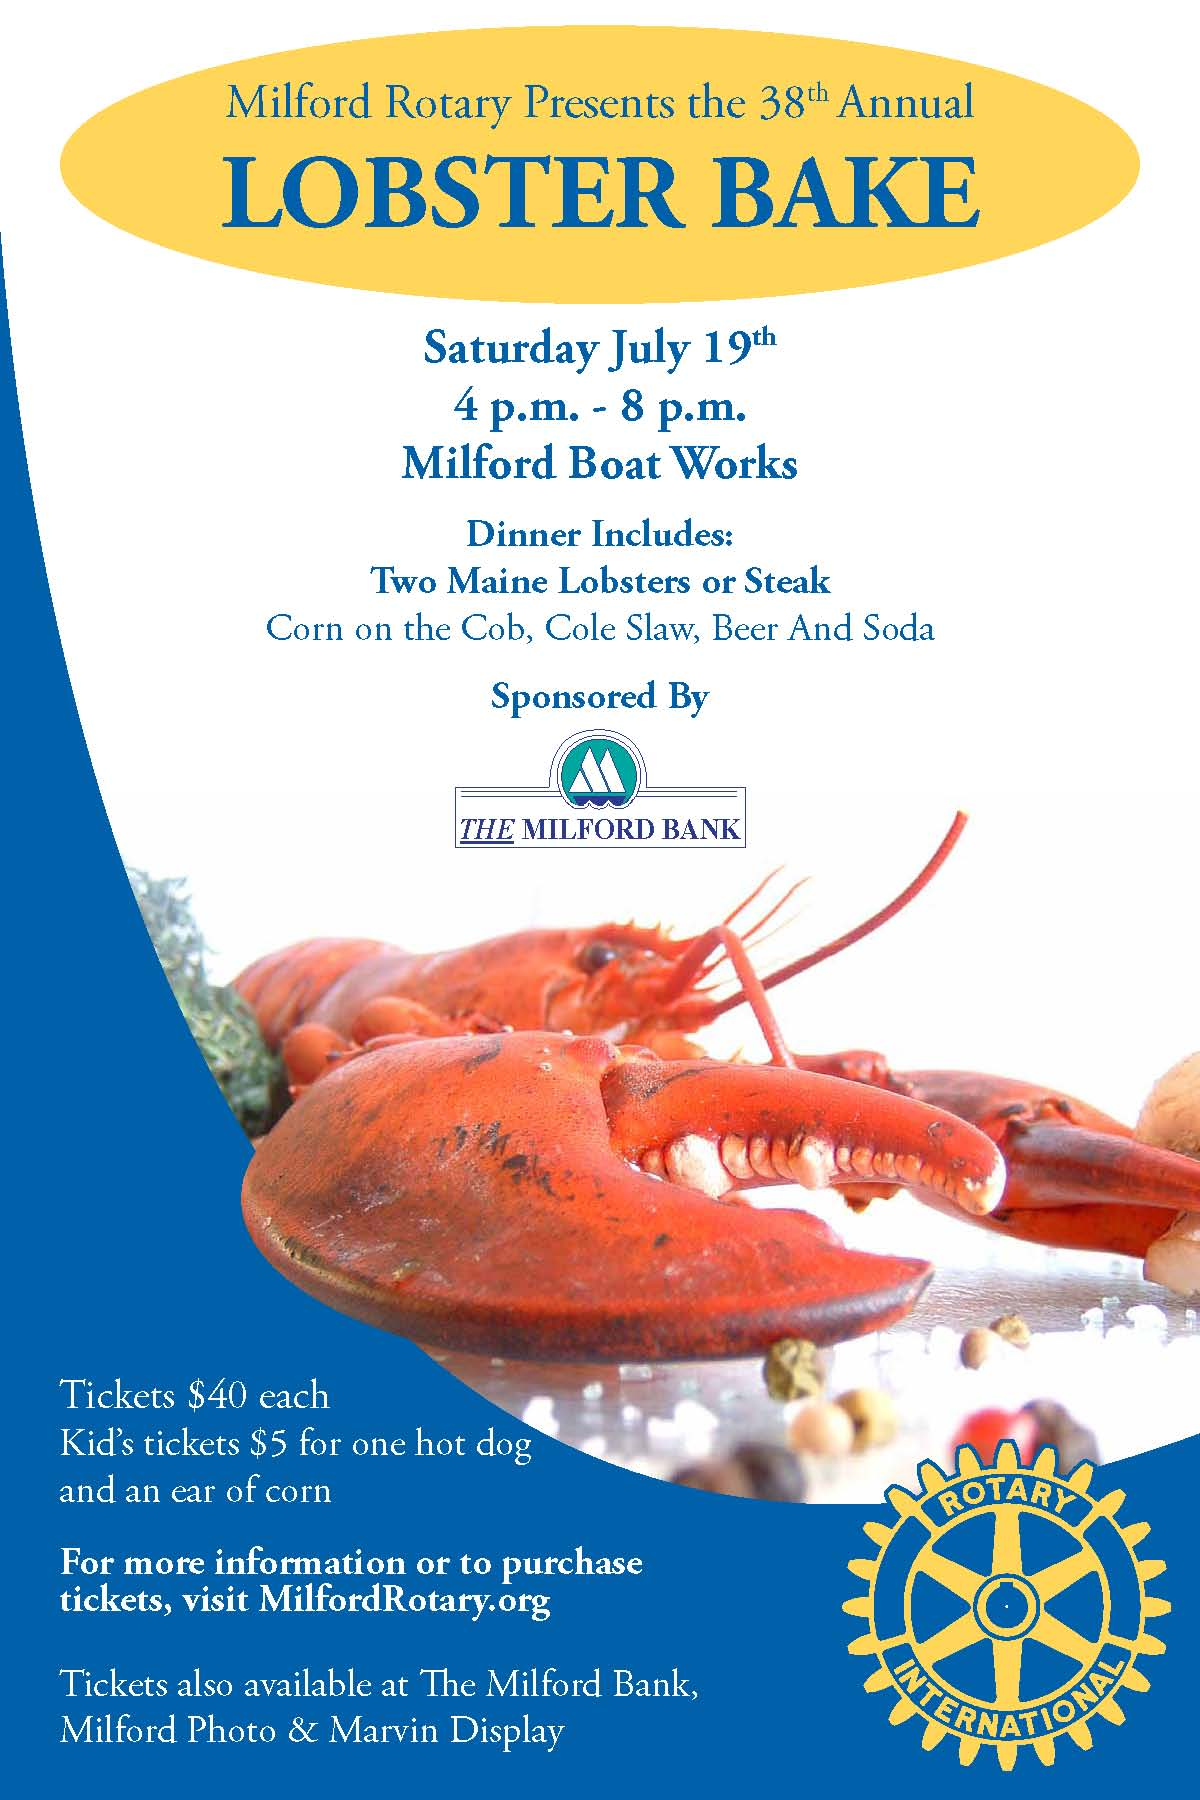 2014 Lobster Bake